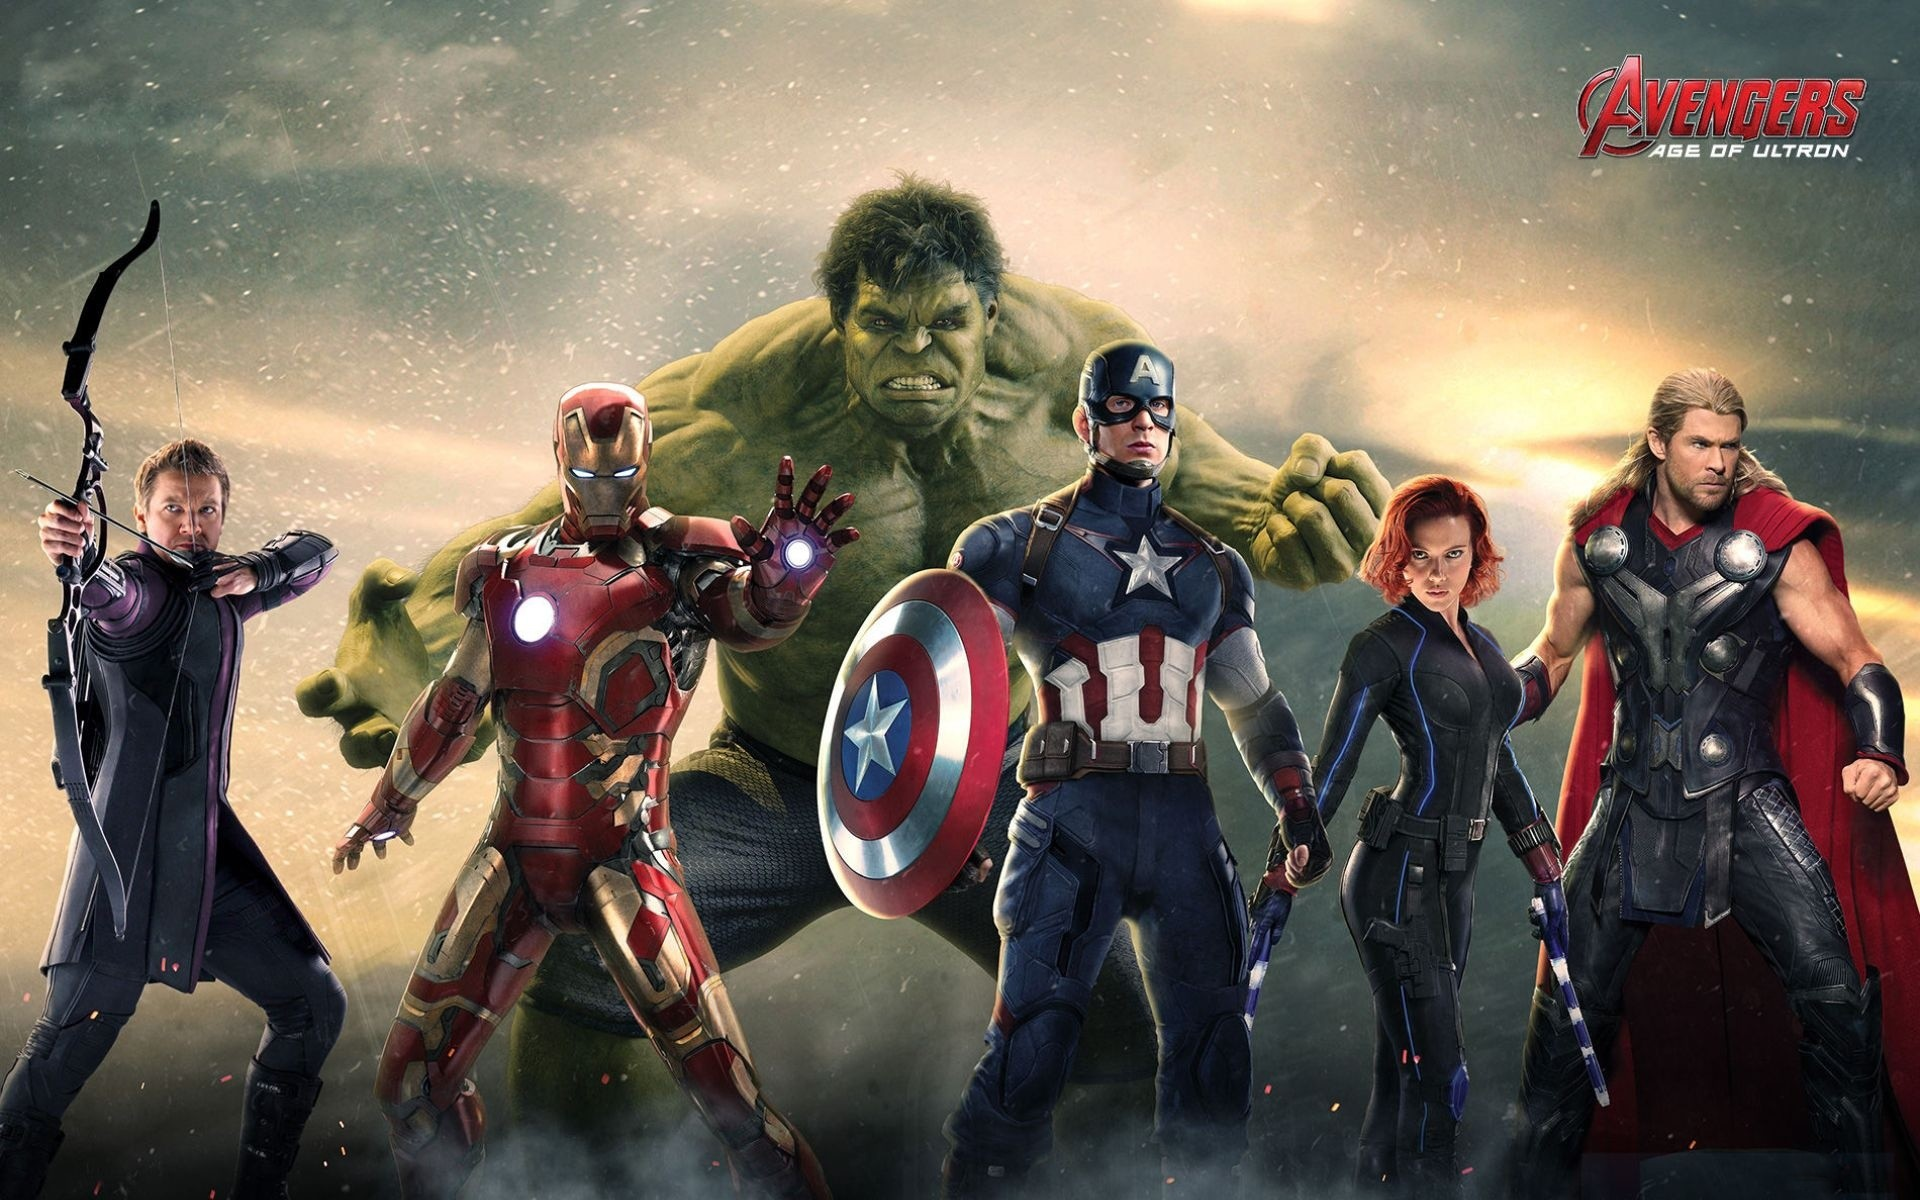 1920x1200 The Avengers mobile wallpapers. Download free The Avengers